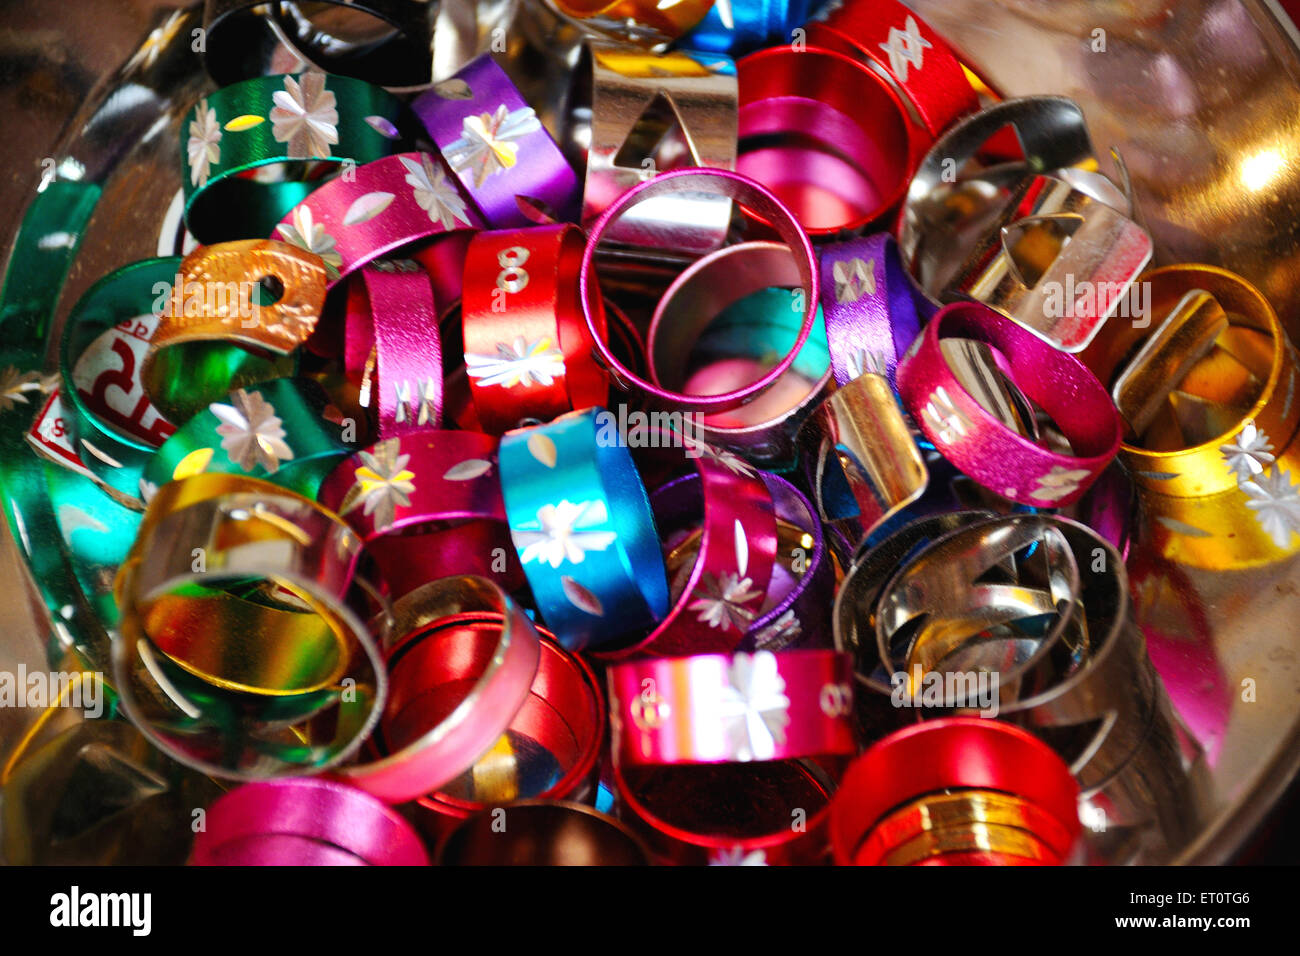 Colorful bangles - Stock Image